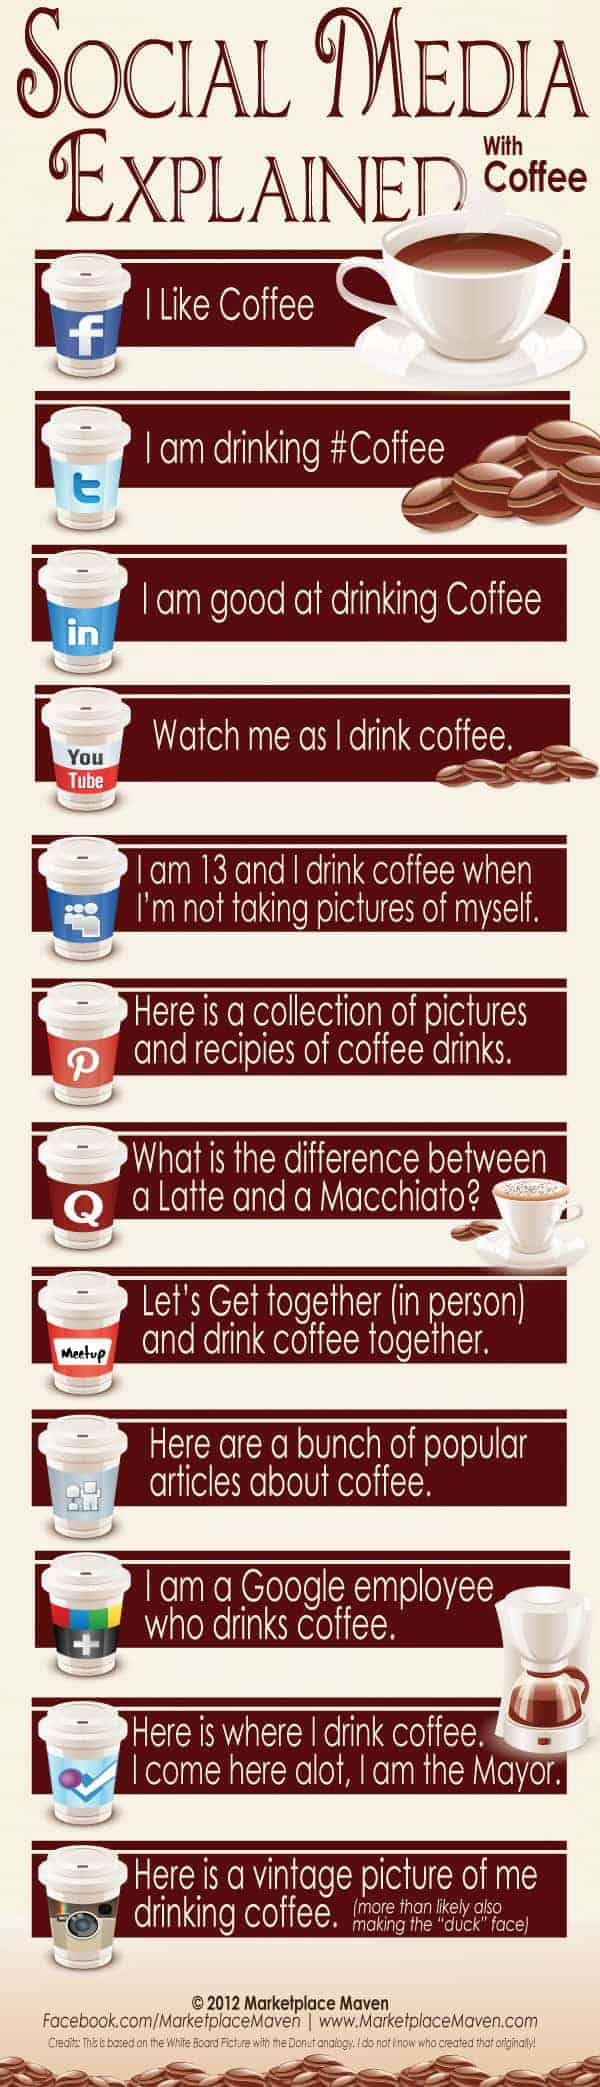 Social media expalined through coffee infographic